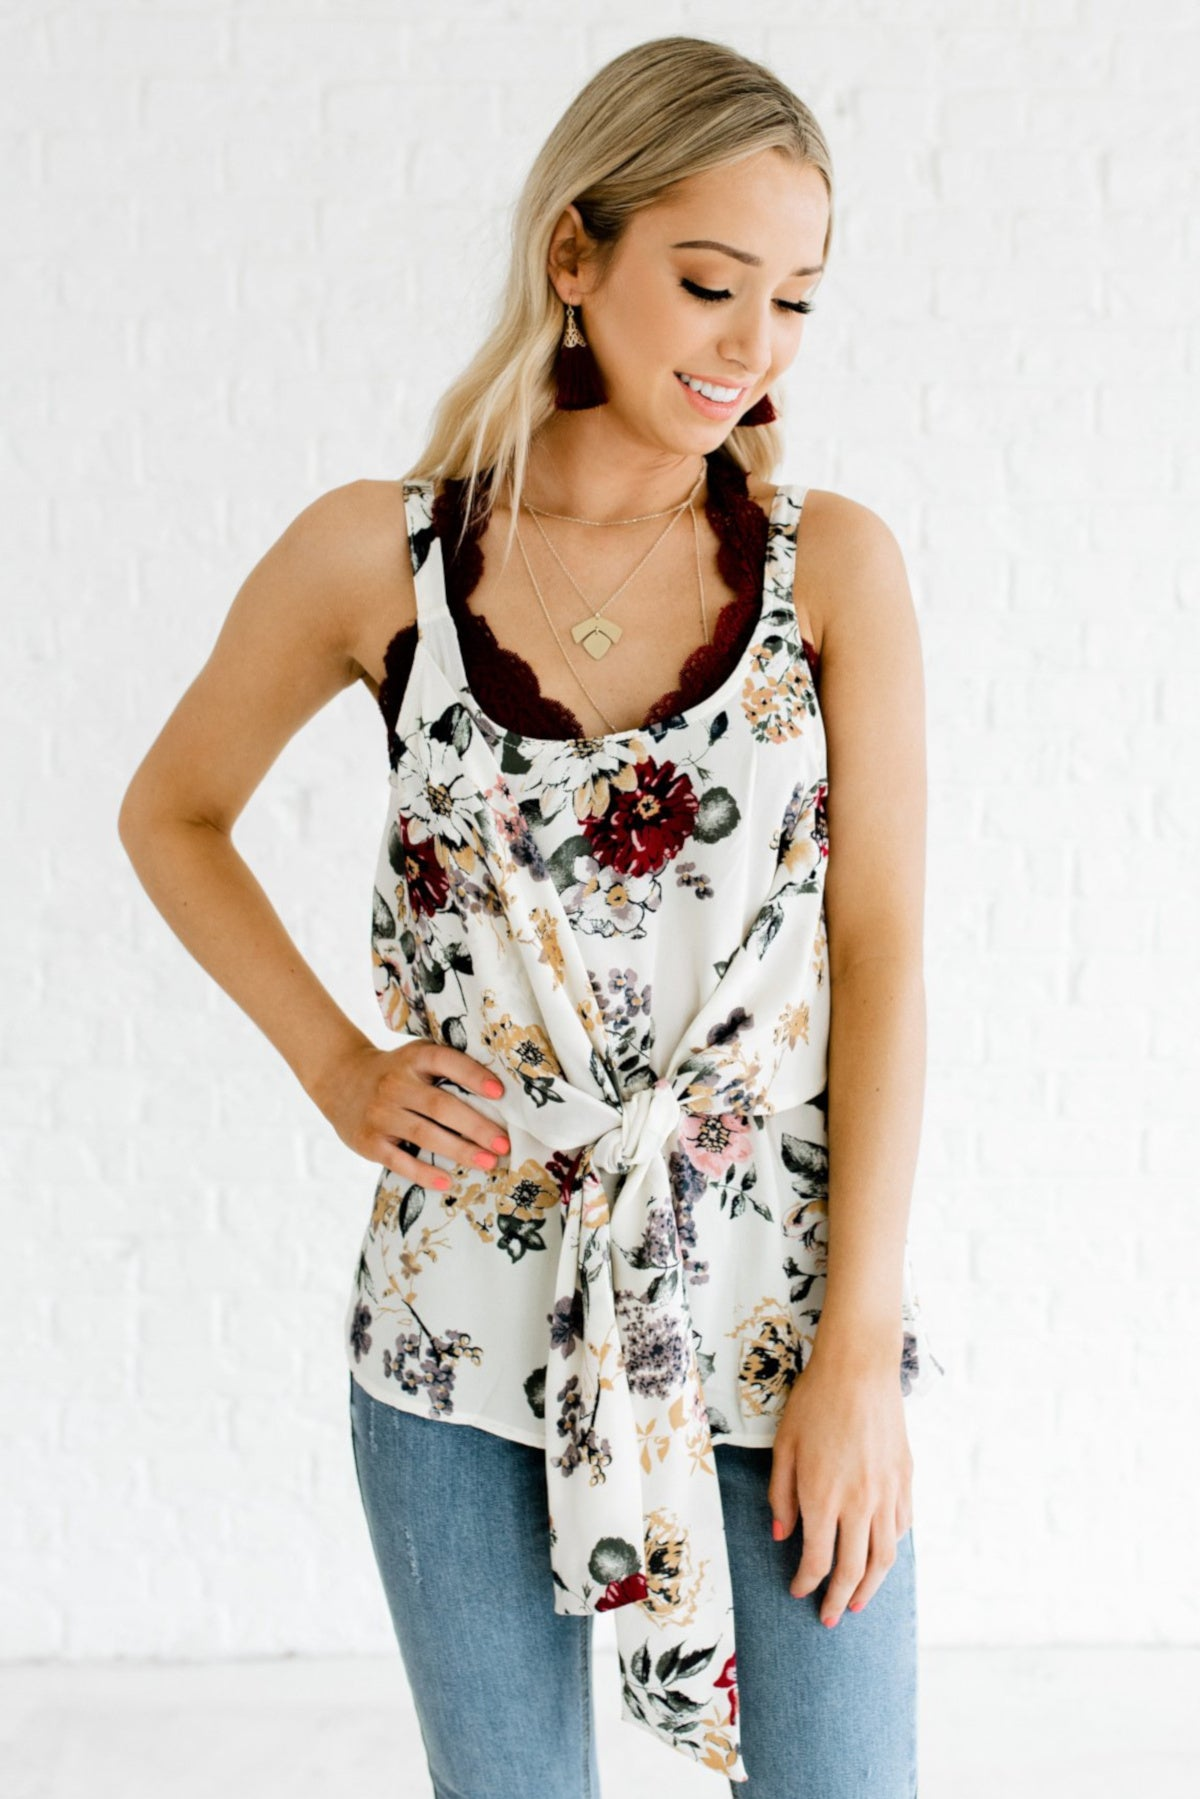 Cream Floral Patterned Boutique Flowy Tops for Women